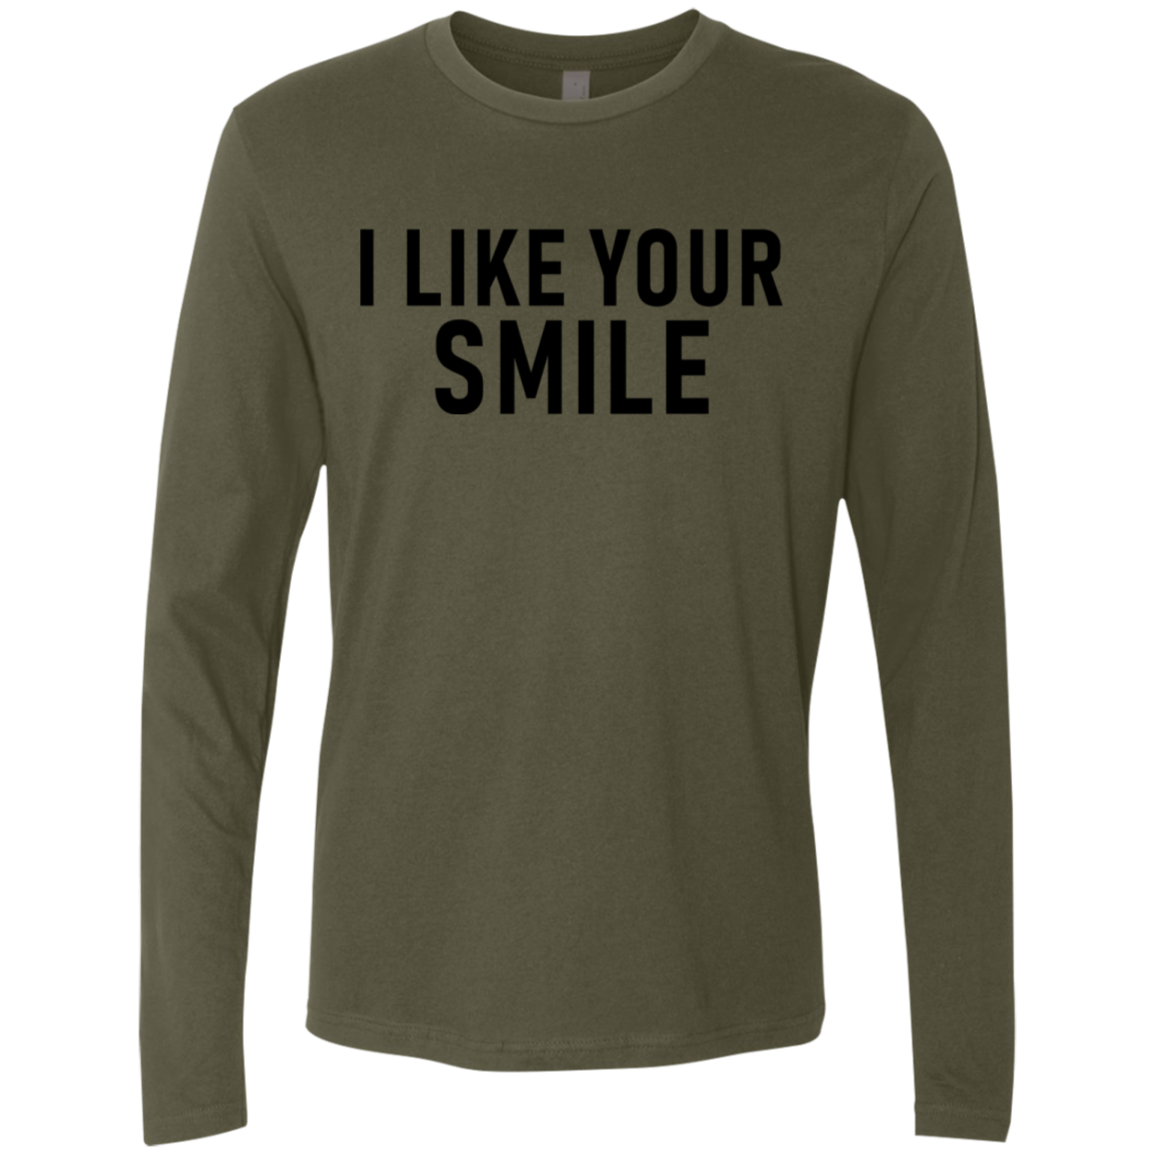 I Like Your Smile Men's Long Sleeve Tee